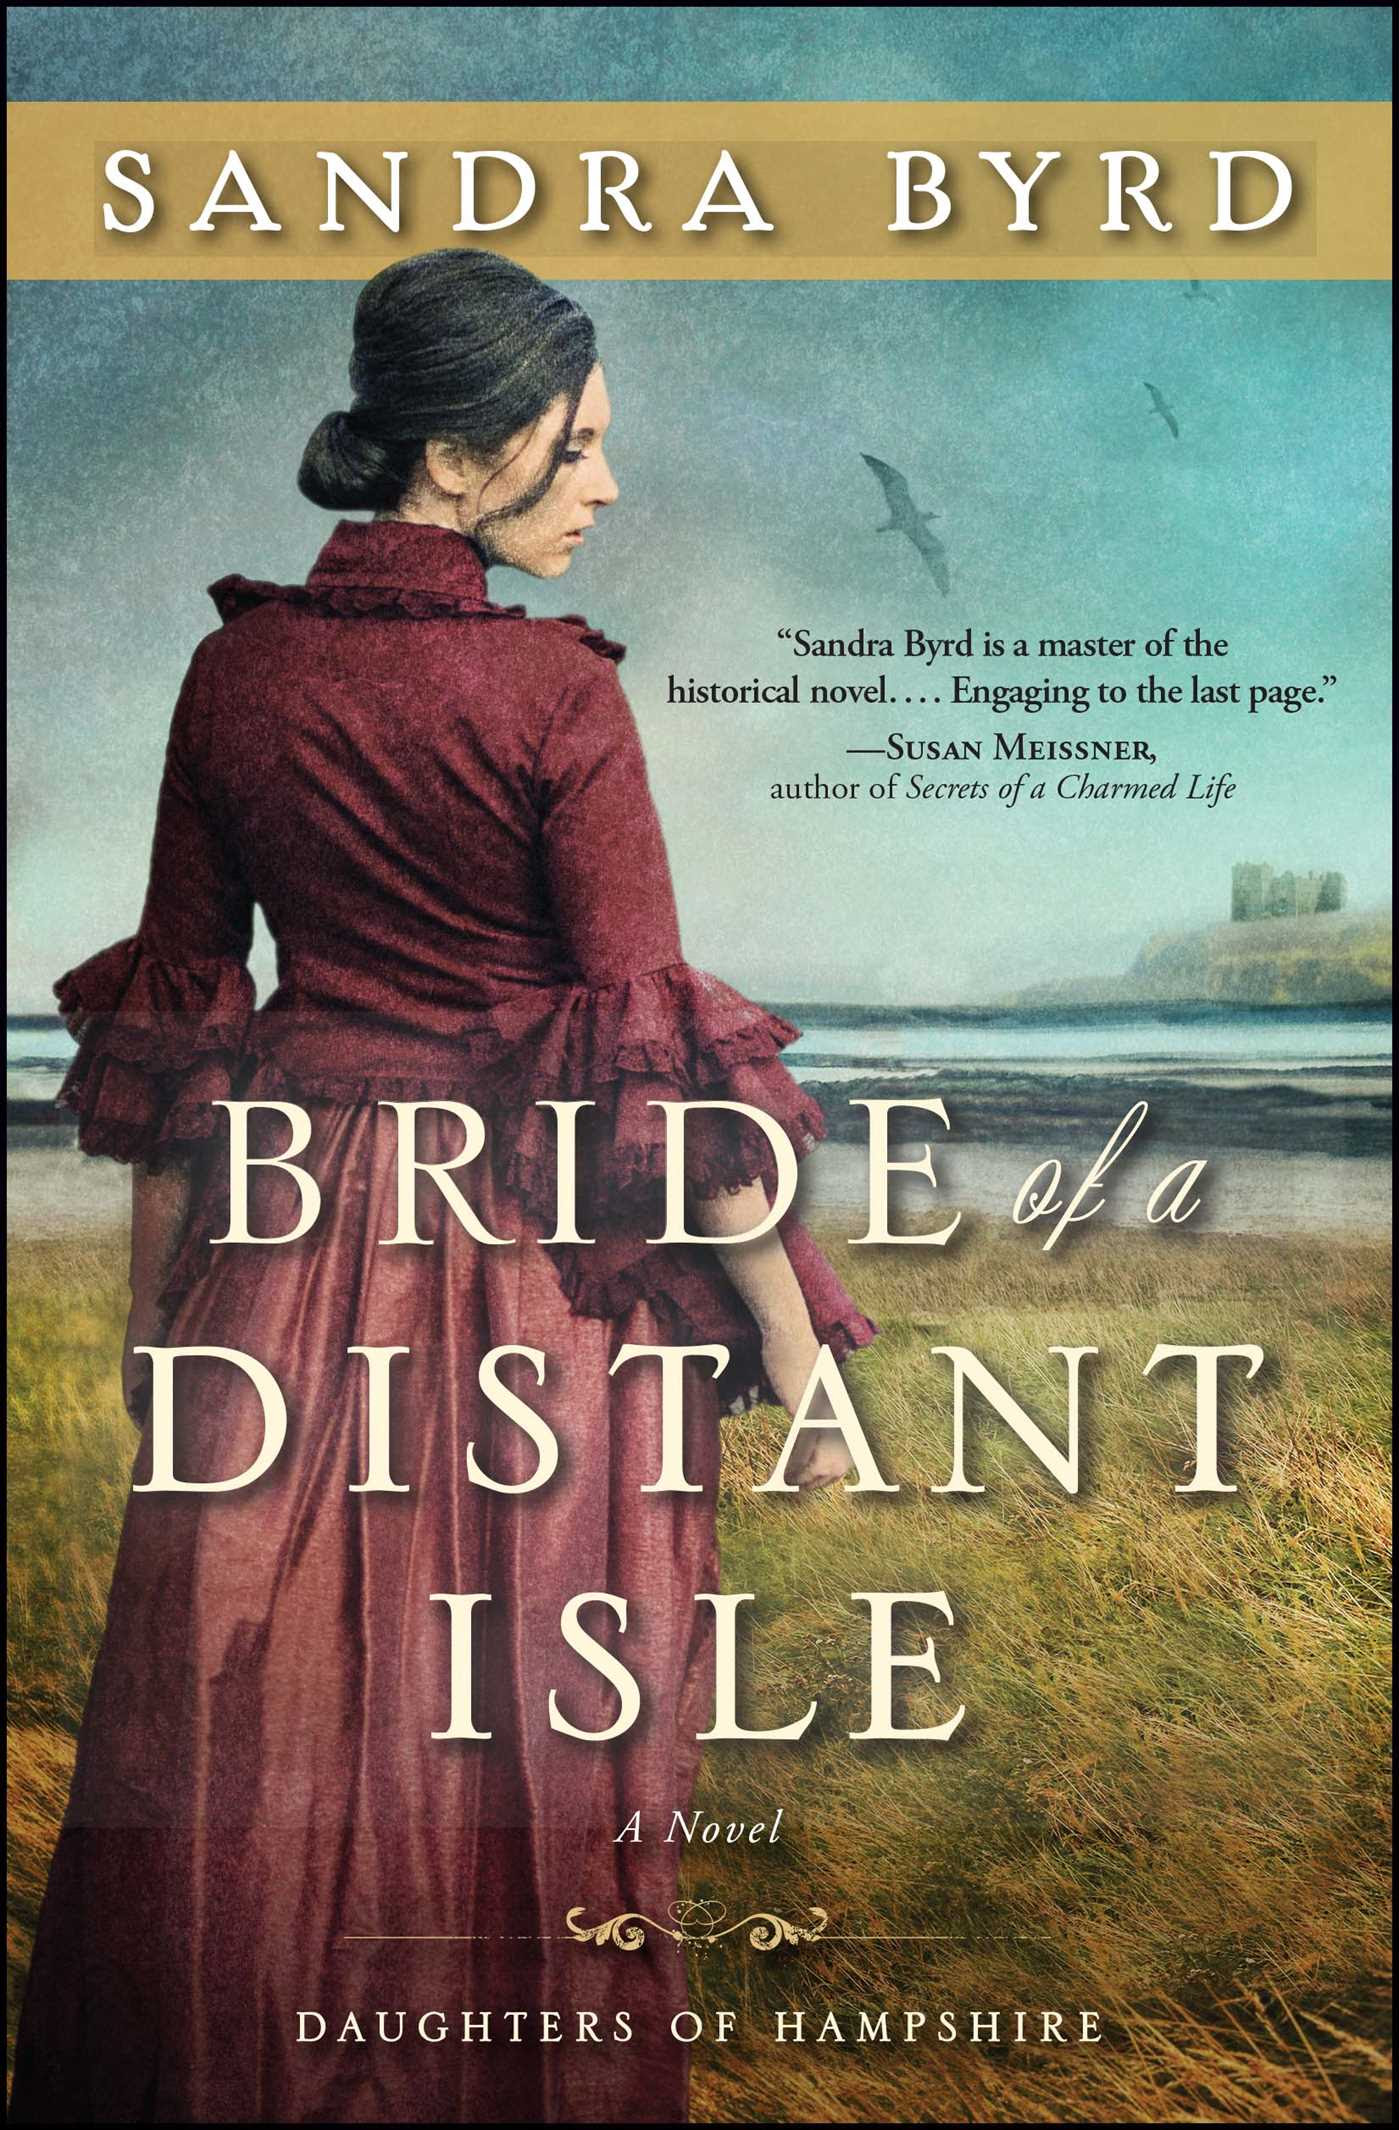 Bride-of-a-distant-isle-9781476717890_hr